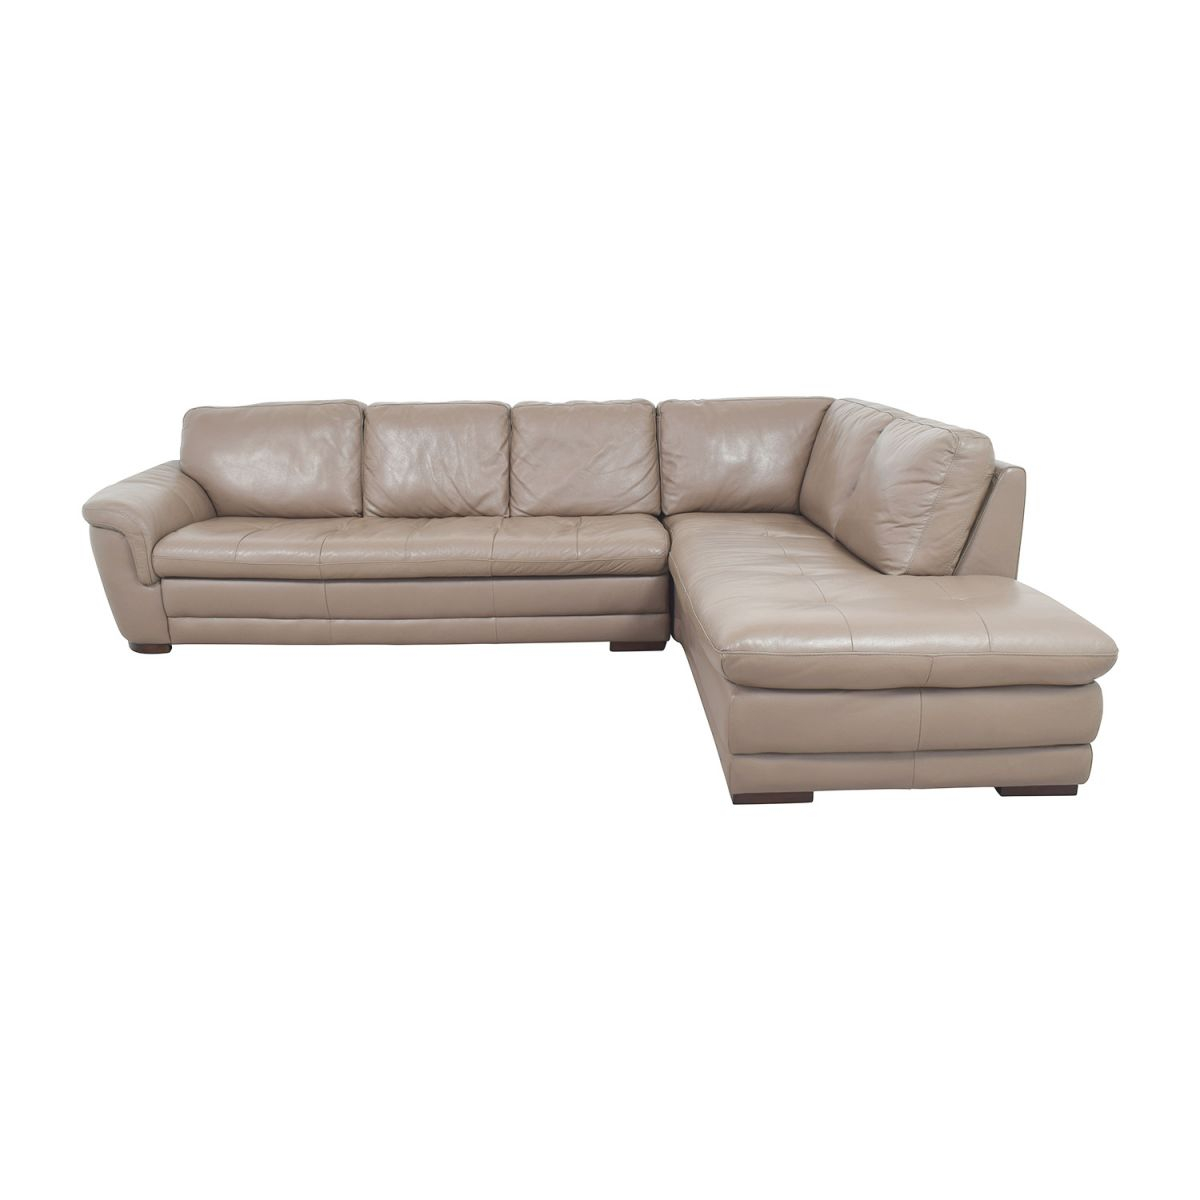 74% Off – Raymour & Flanigan Raymour & Flanigan Tan Tufted Leather Sectional / Sofas intended for Raymour And Flanigan Sectional Sofas